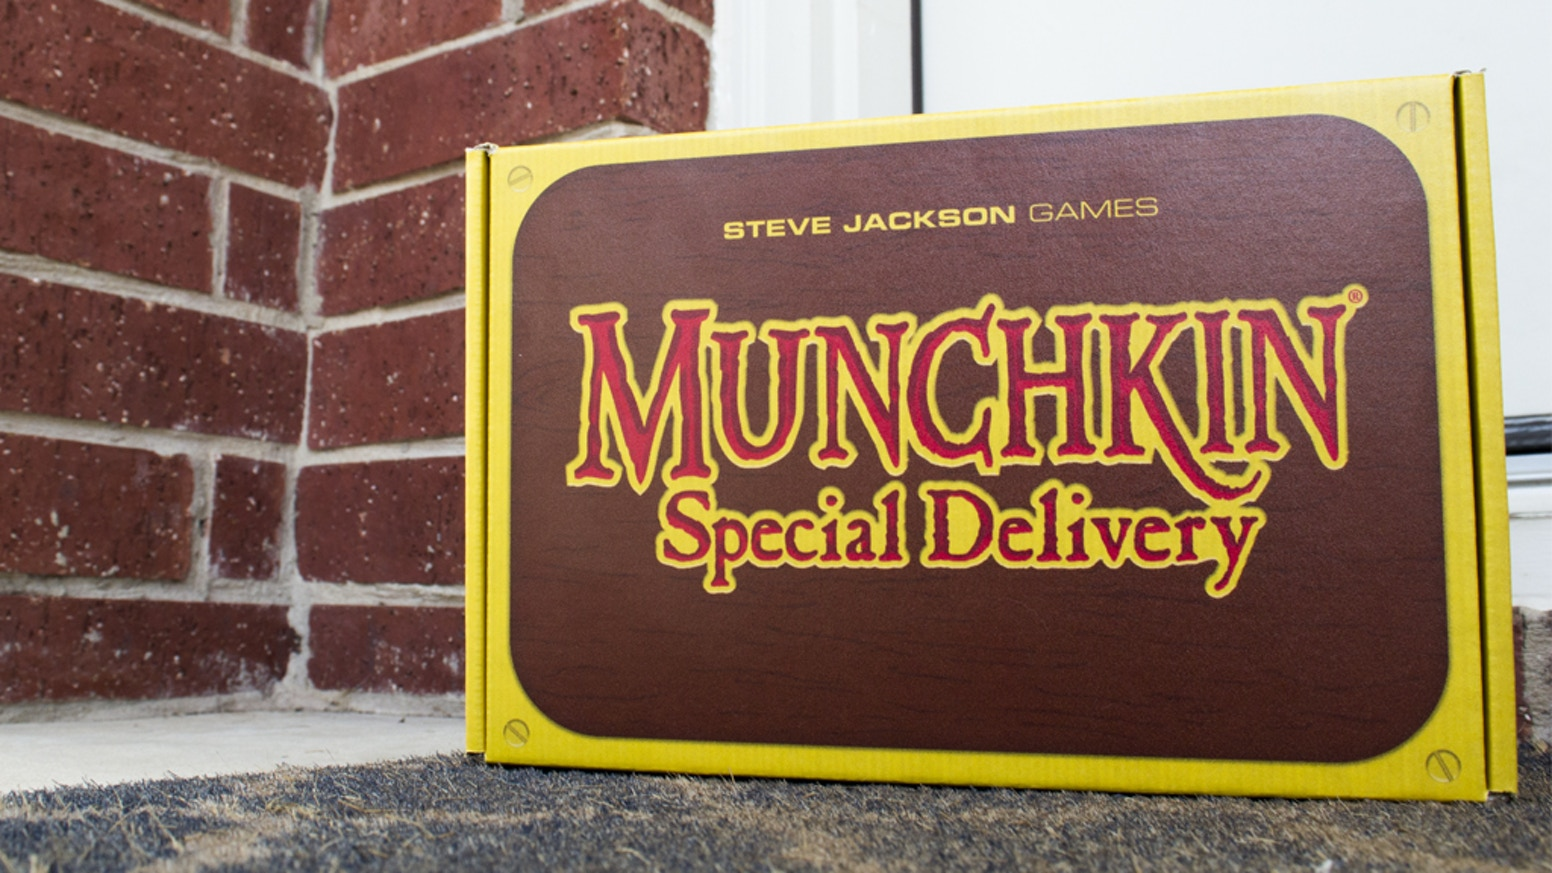 You'll receive a core Munchkin game, a combination of expansions and/or boosters, and cool accessories and swag!